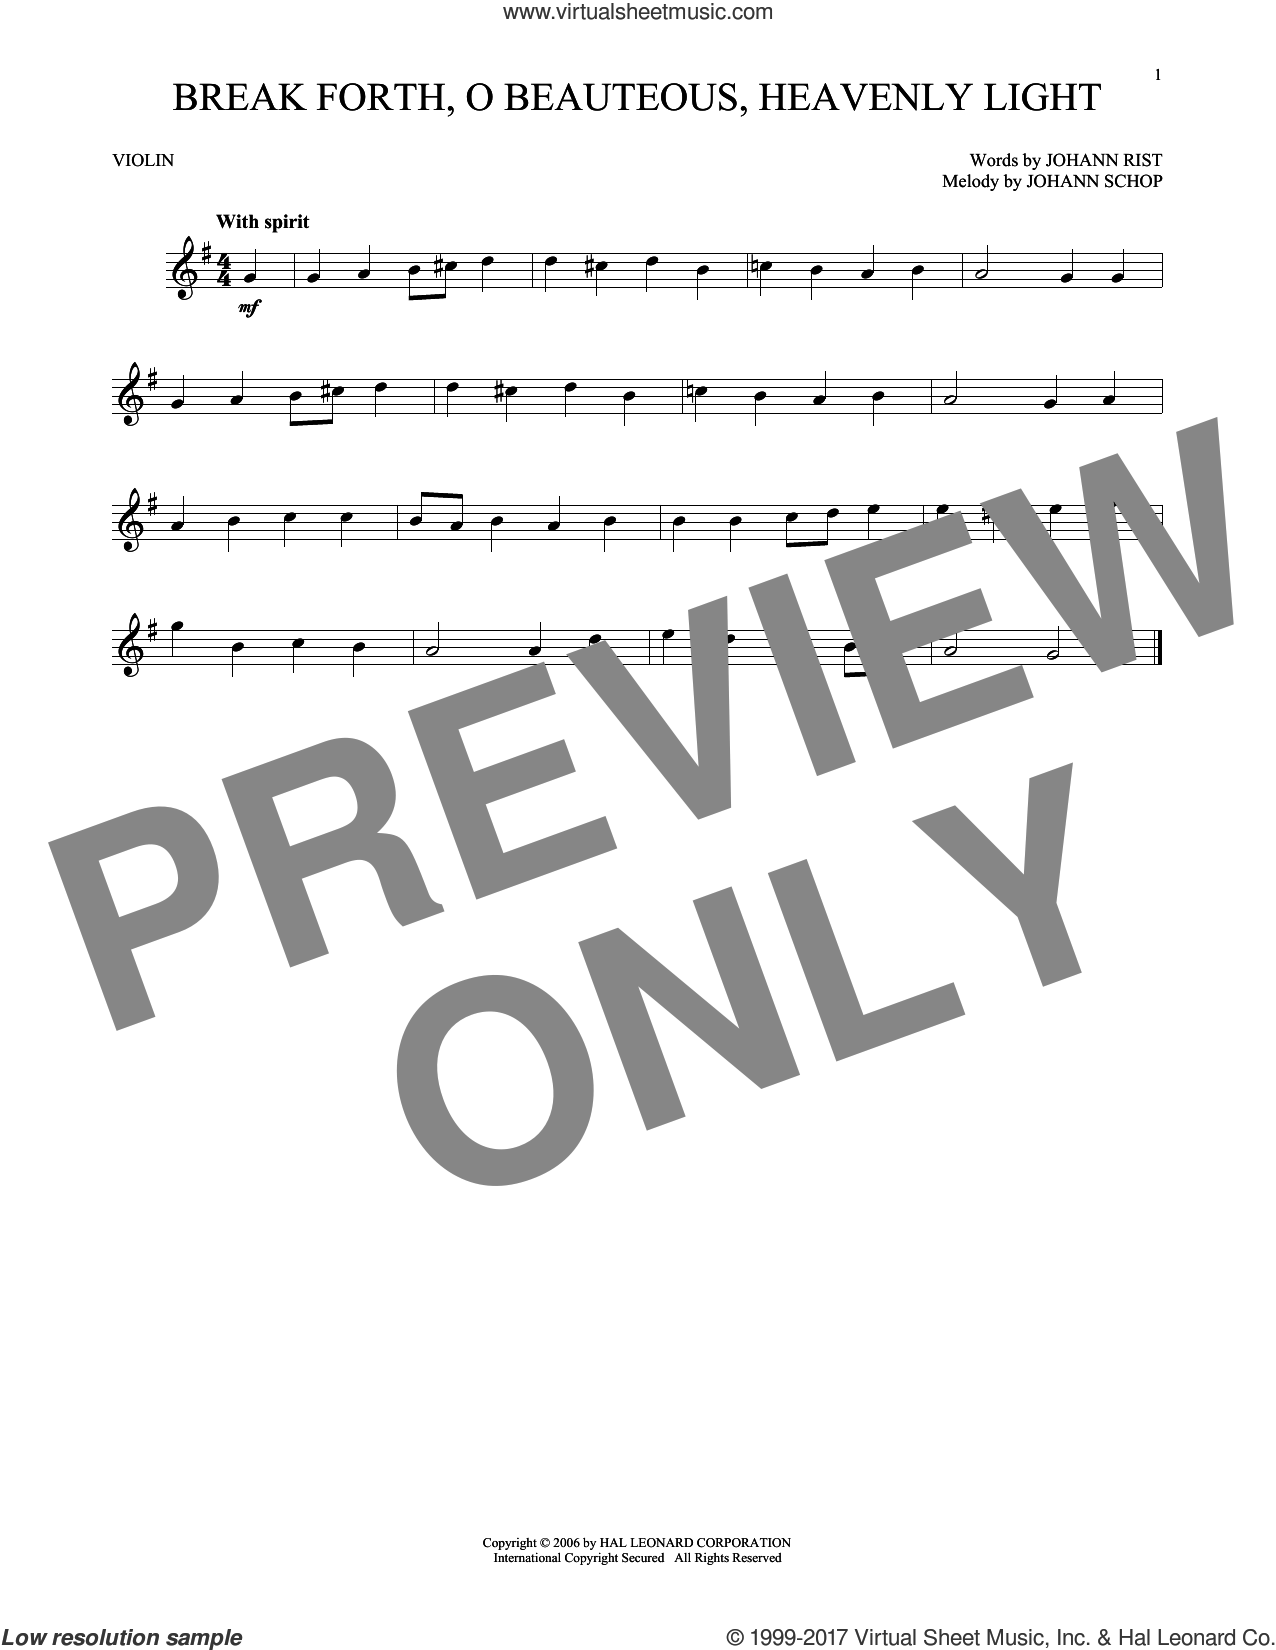 Break Forth, O Beauteous, Heavenly Light sheet music for violin solo by Johann Sebastian Bach, Johann Rist and Johann Schop, classical score, intermediate skill level